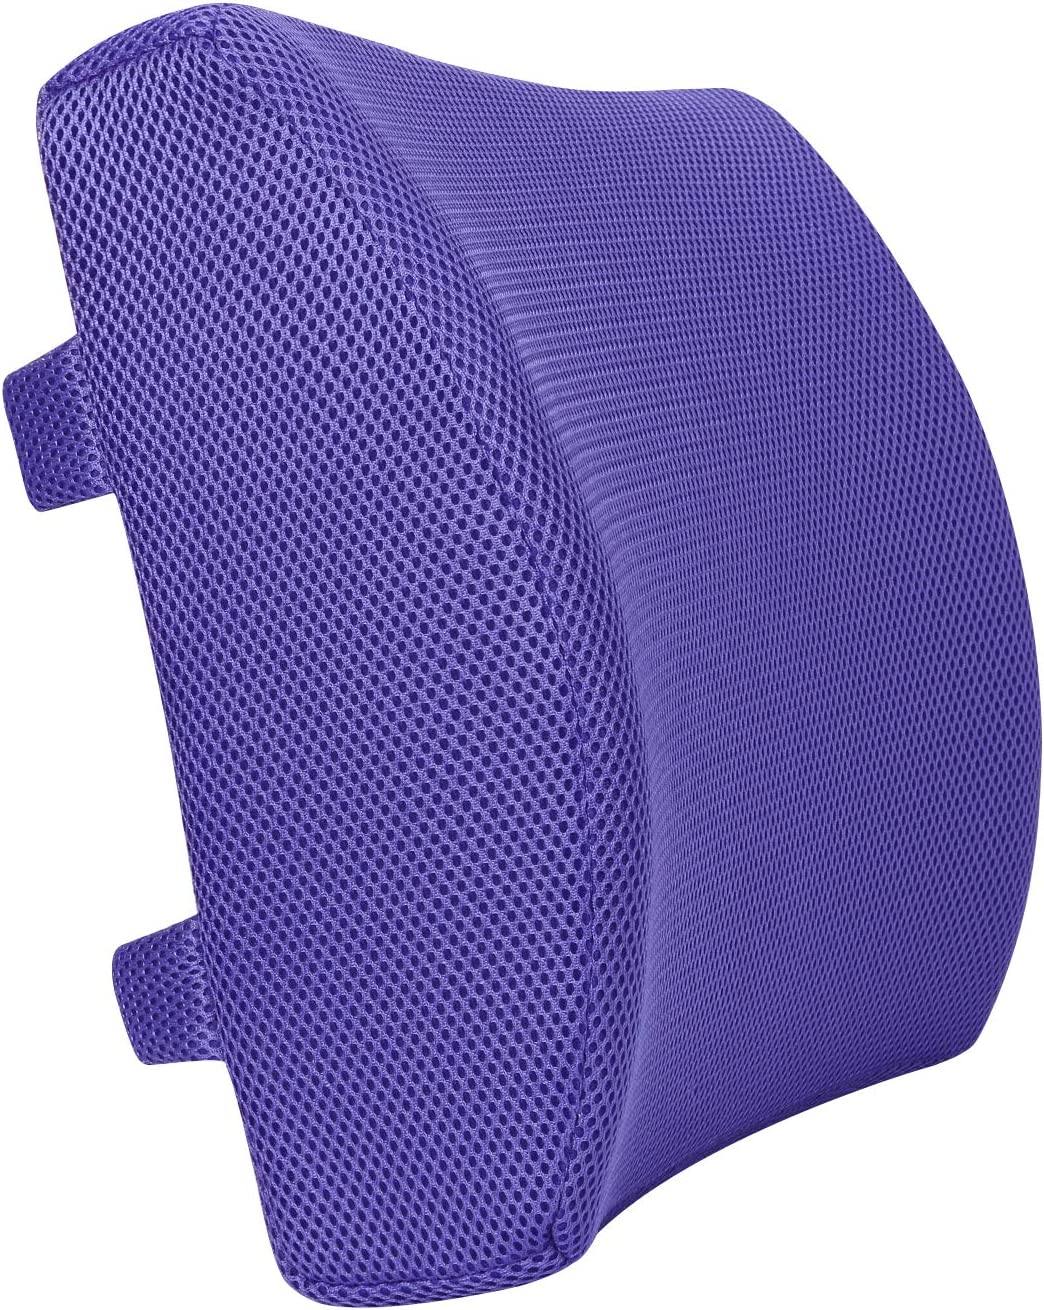 LoveHome Memory Foam Lumbar Support Back Cushion With 3D Mesh Cover Balanced Firmness Designed for Lower Back Pain Relief- Ideal Back Pillow for Computer/Office Chair, Car Seat, Recliner etc. (Violet)